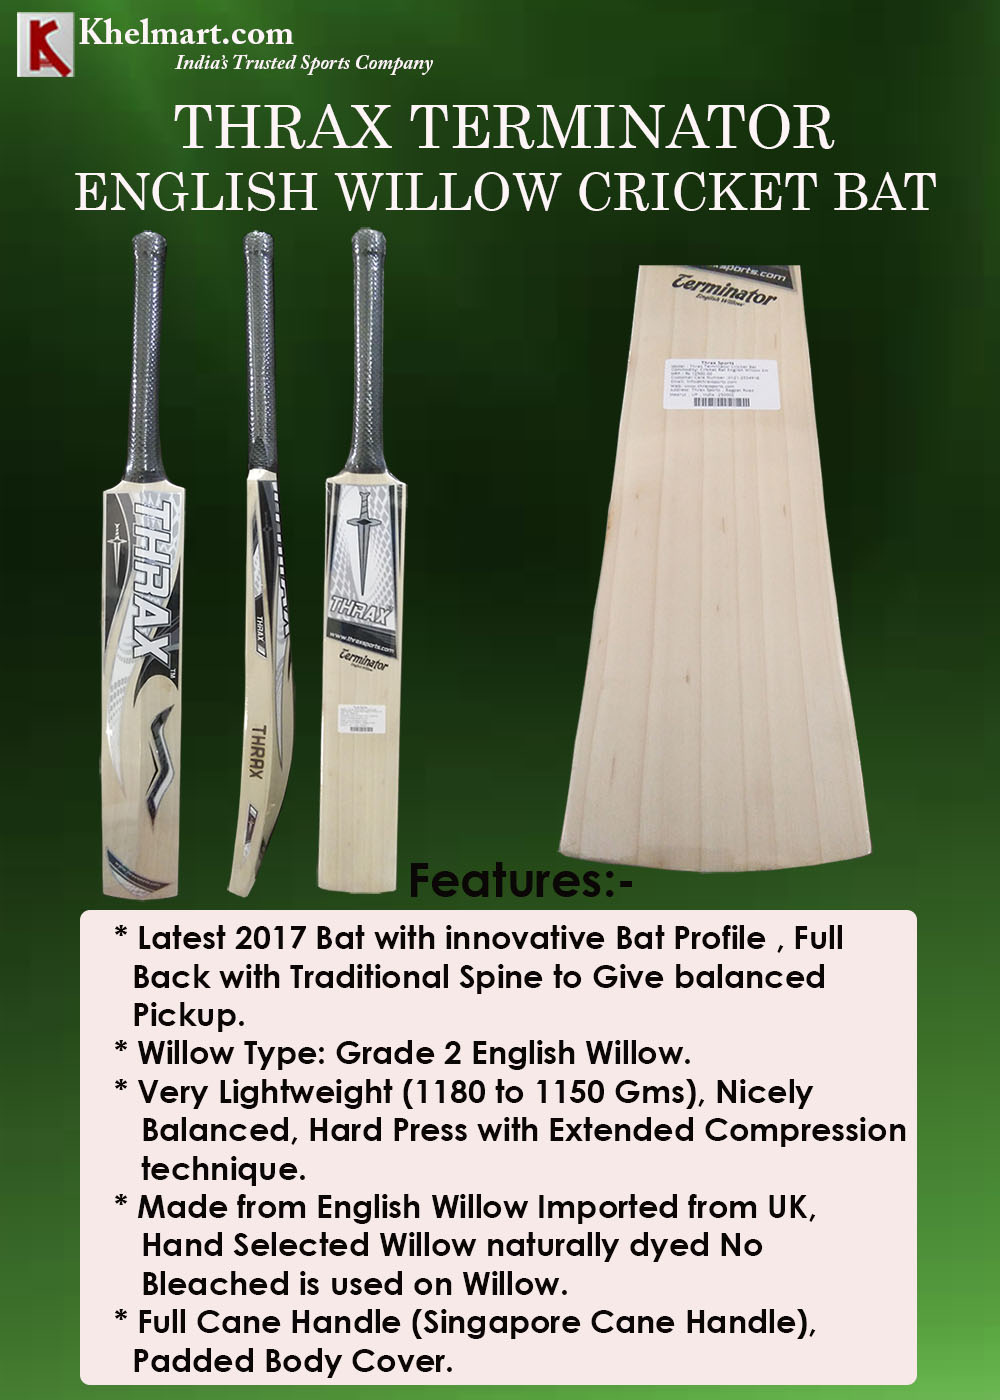 Thrax Terminator English Willow Cricket Bat